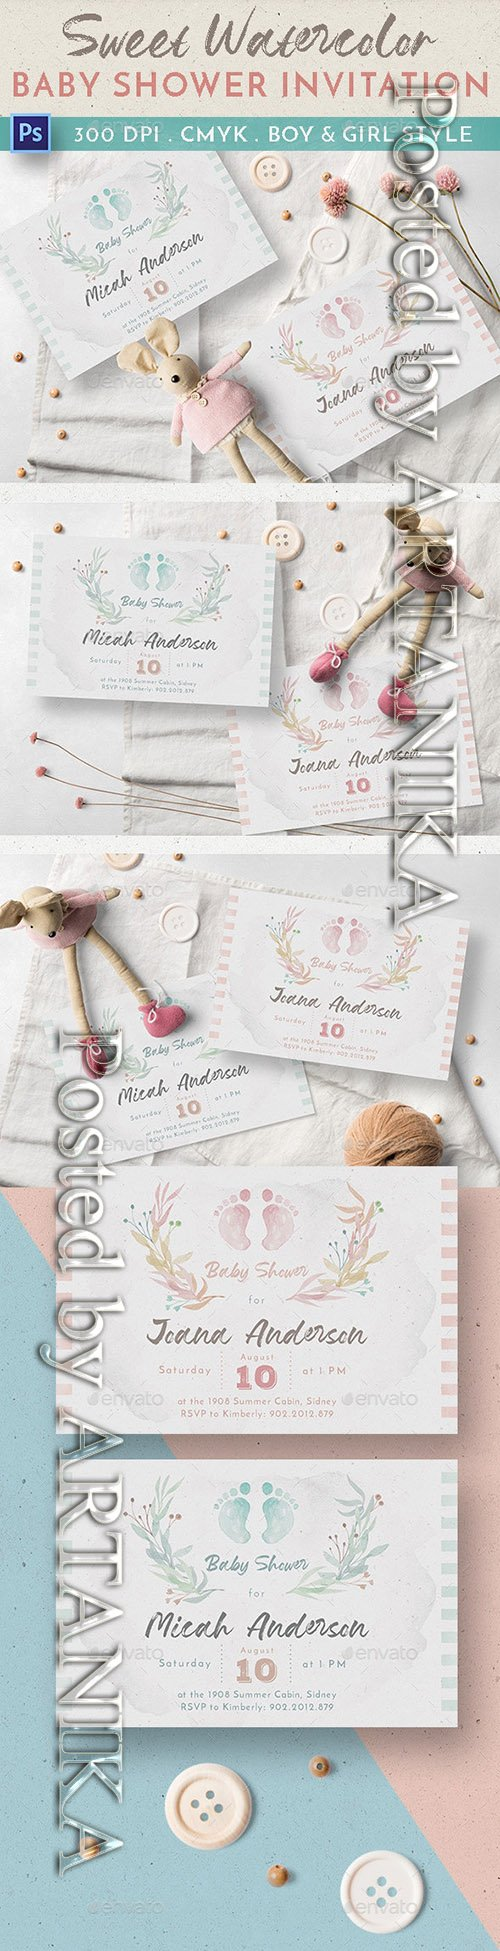 Sweet Watercolor Baby Shower Invitation 23545208